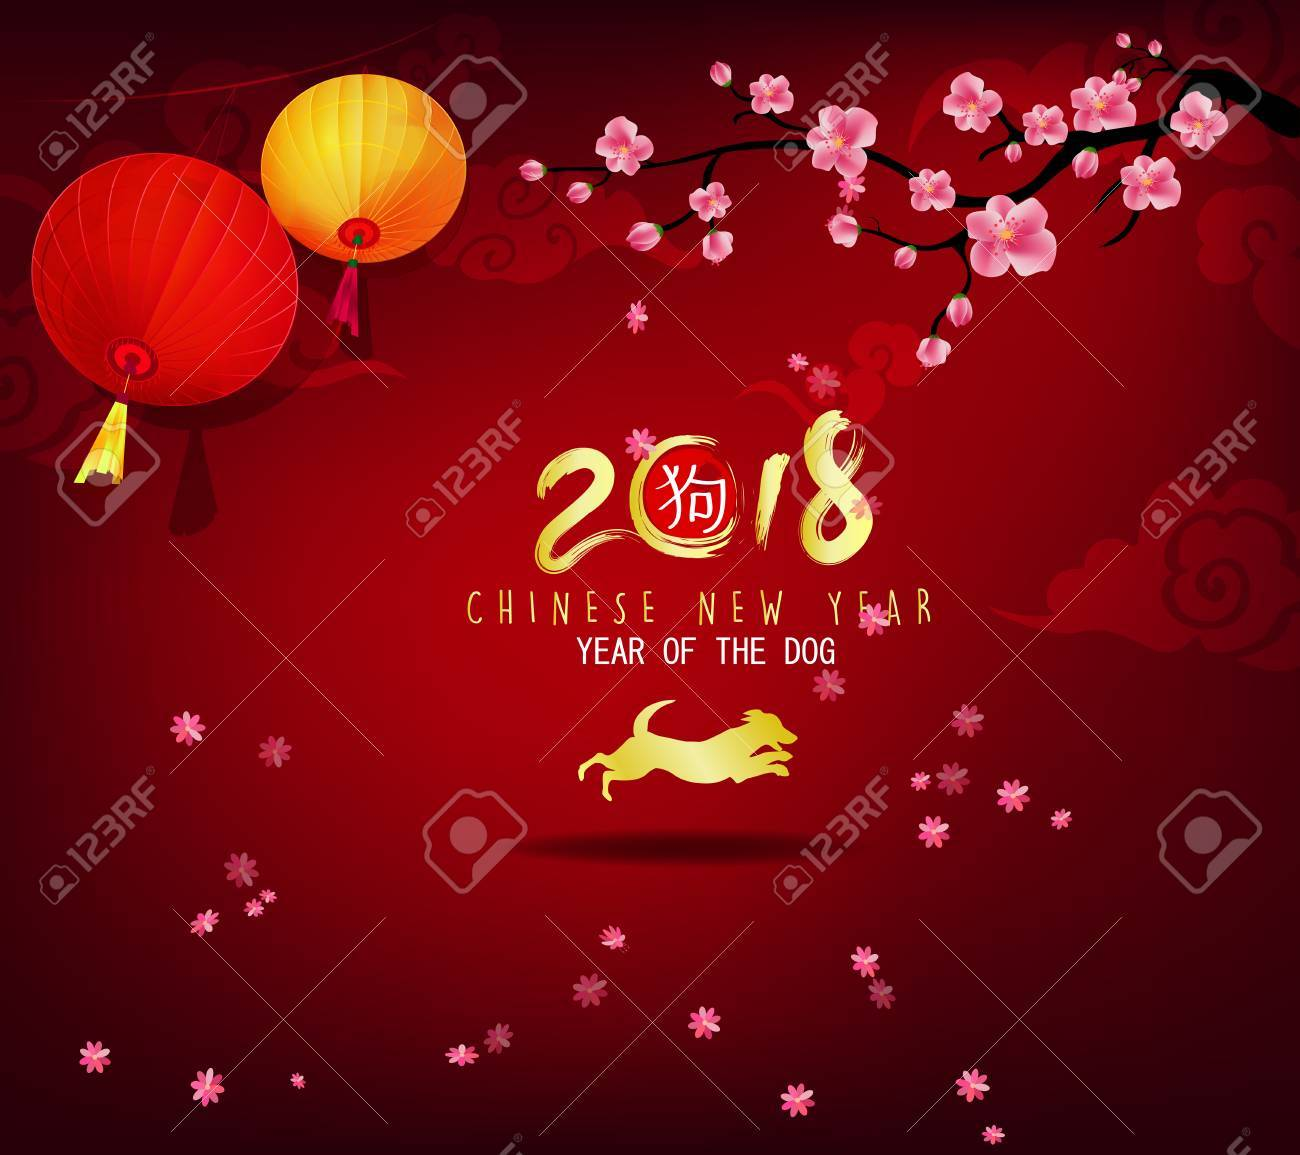 Happy new year 2018 greeting card and chinese new year of the happy new year 2018 greeting card and chinese new year of the dog stock vector m4hsunfo